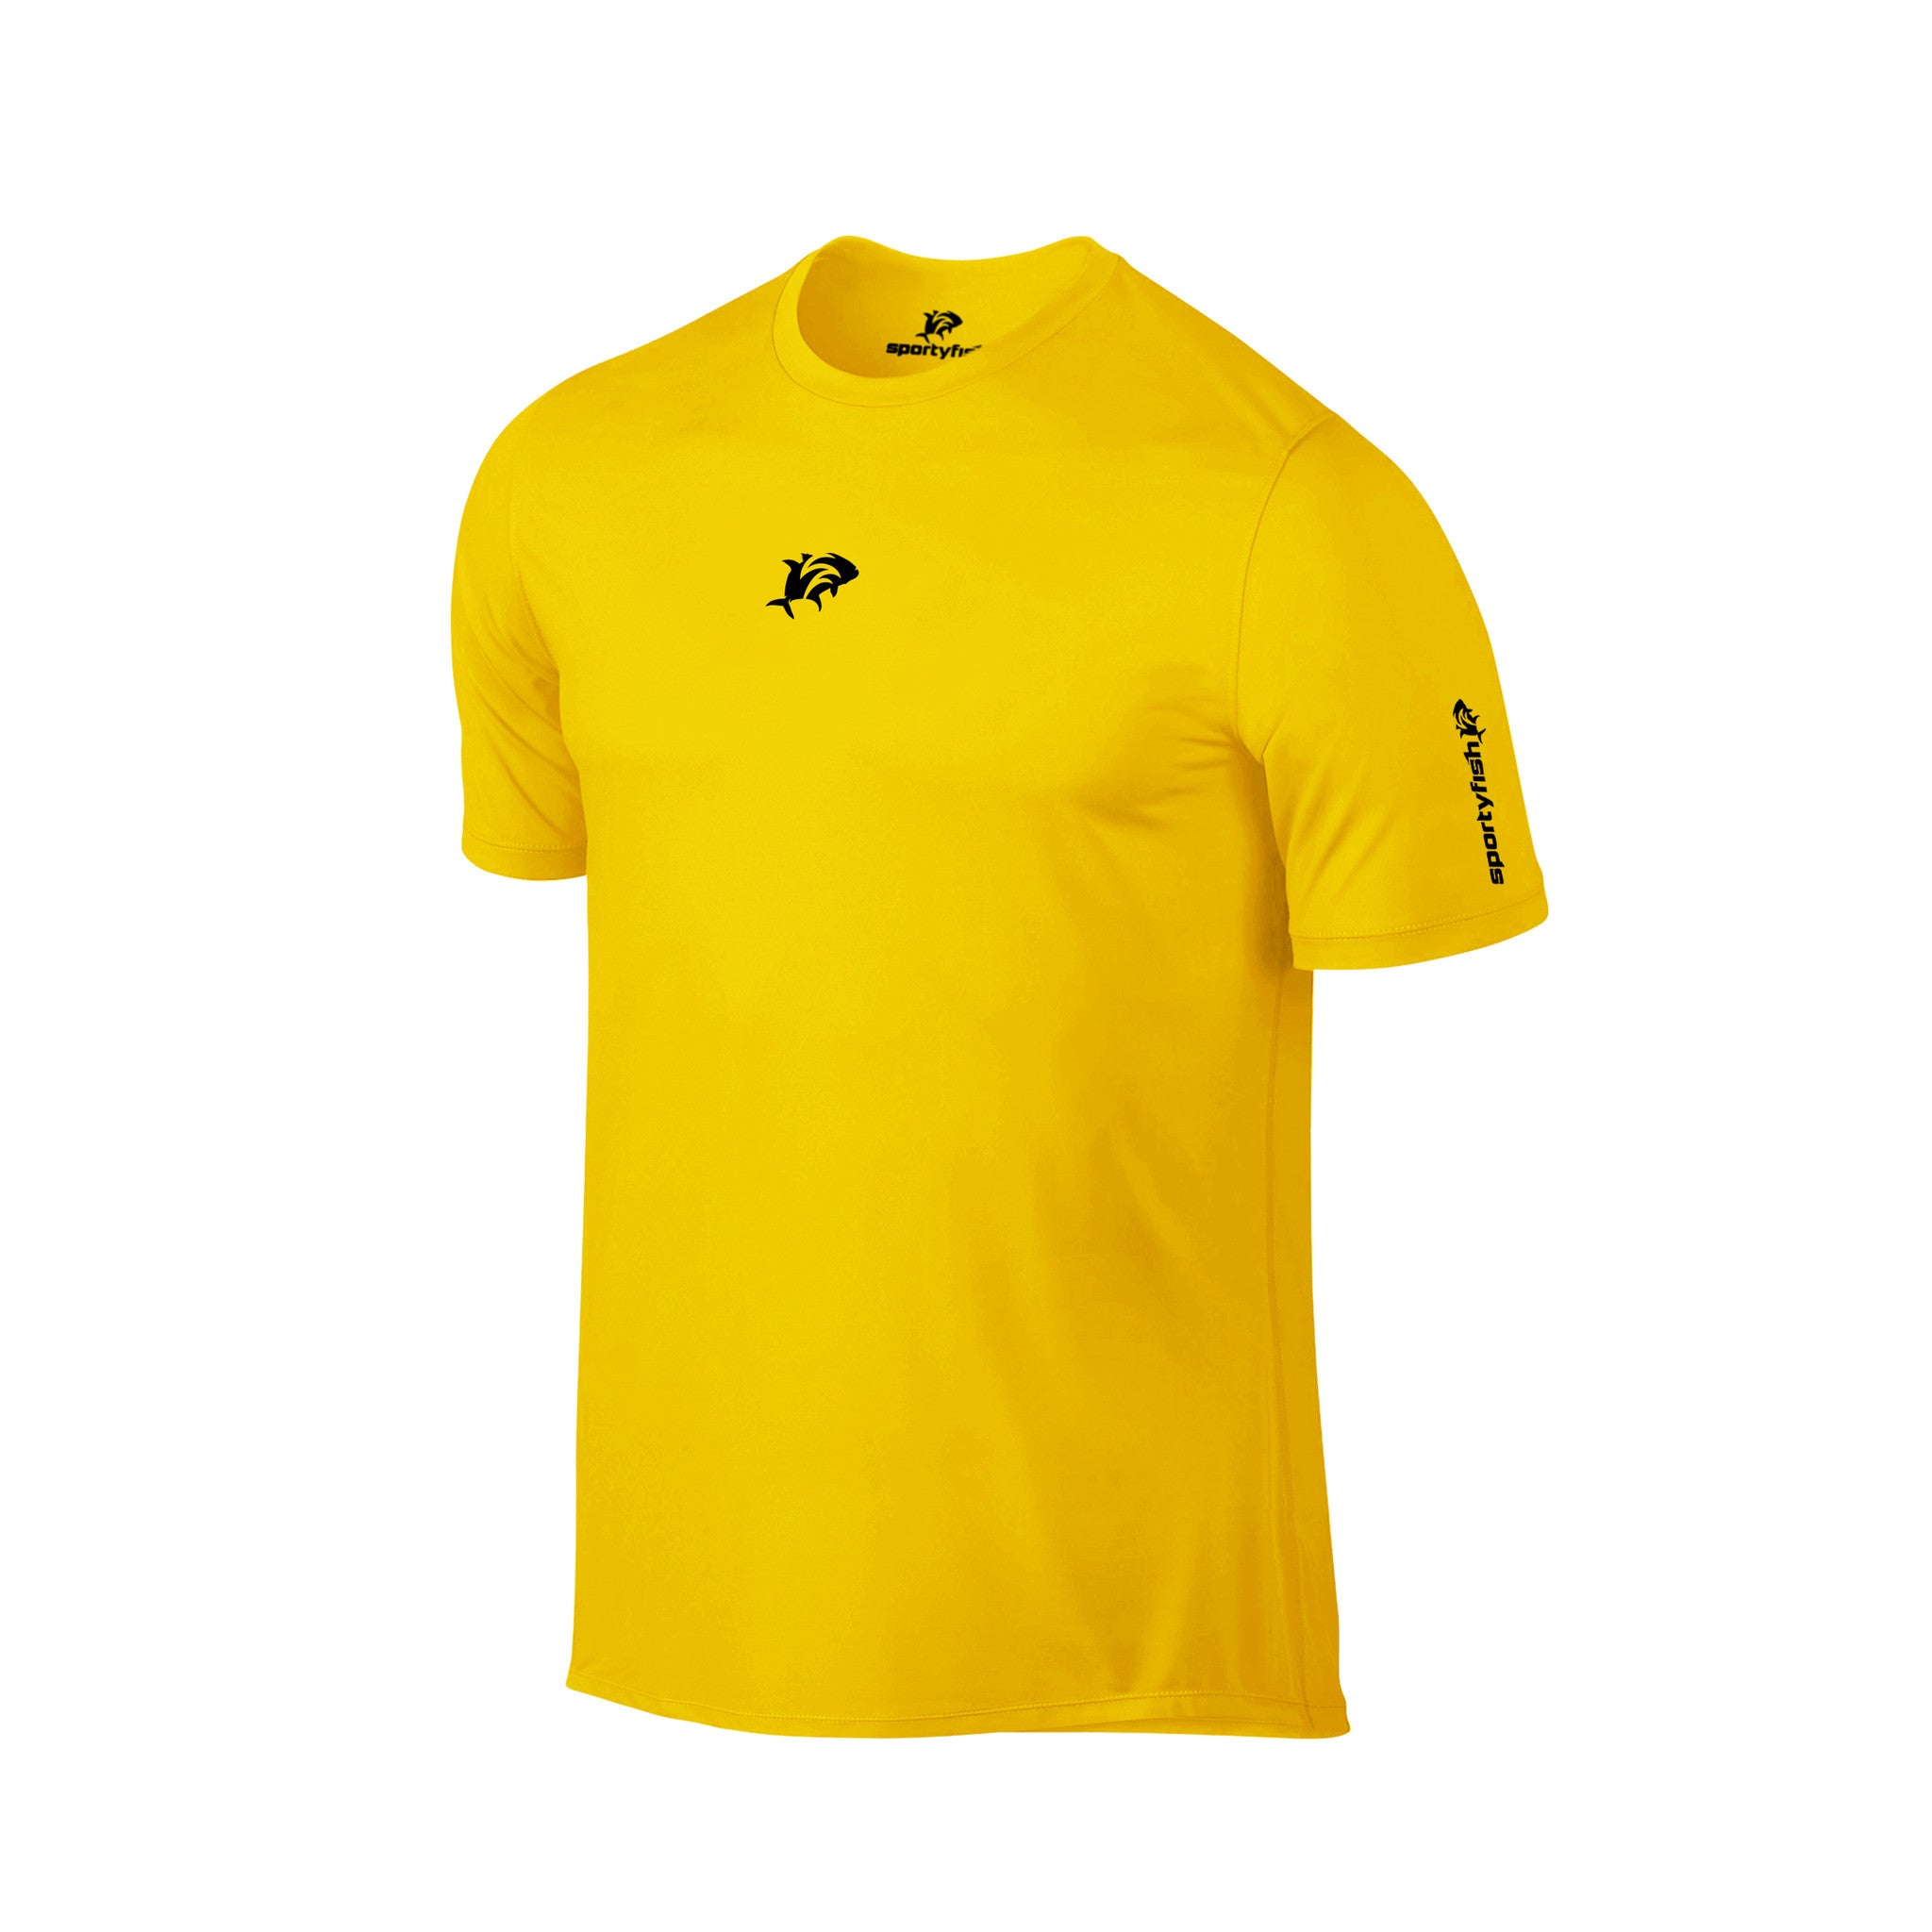 SportyFish Ink Series Yellow T-shirt: Black Marlin and Yellowfin Tuna front view